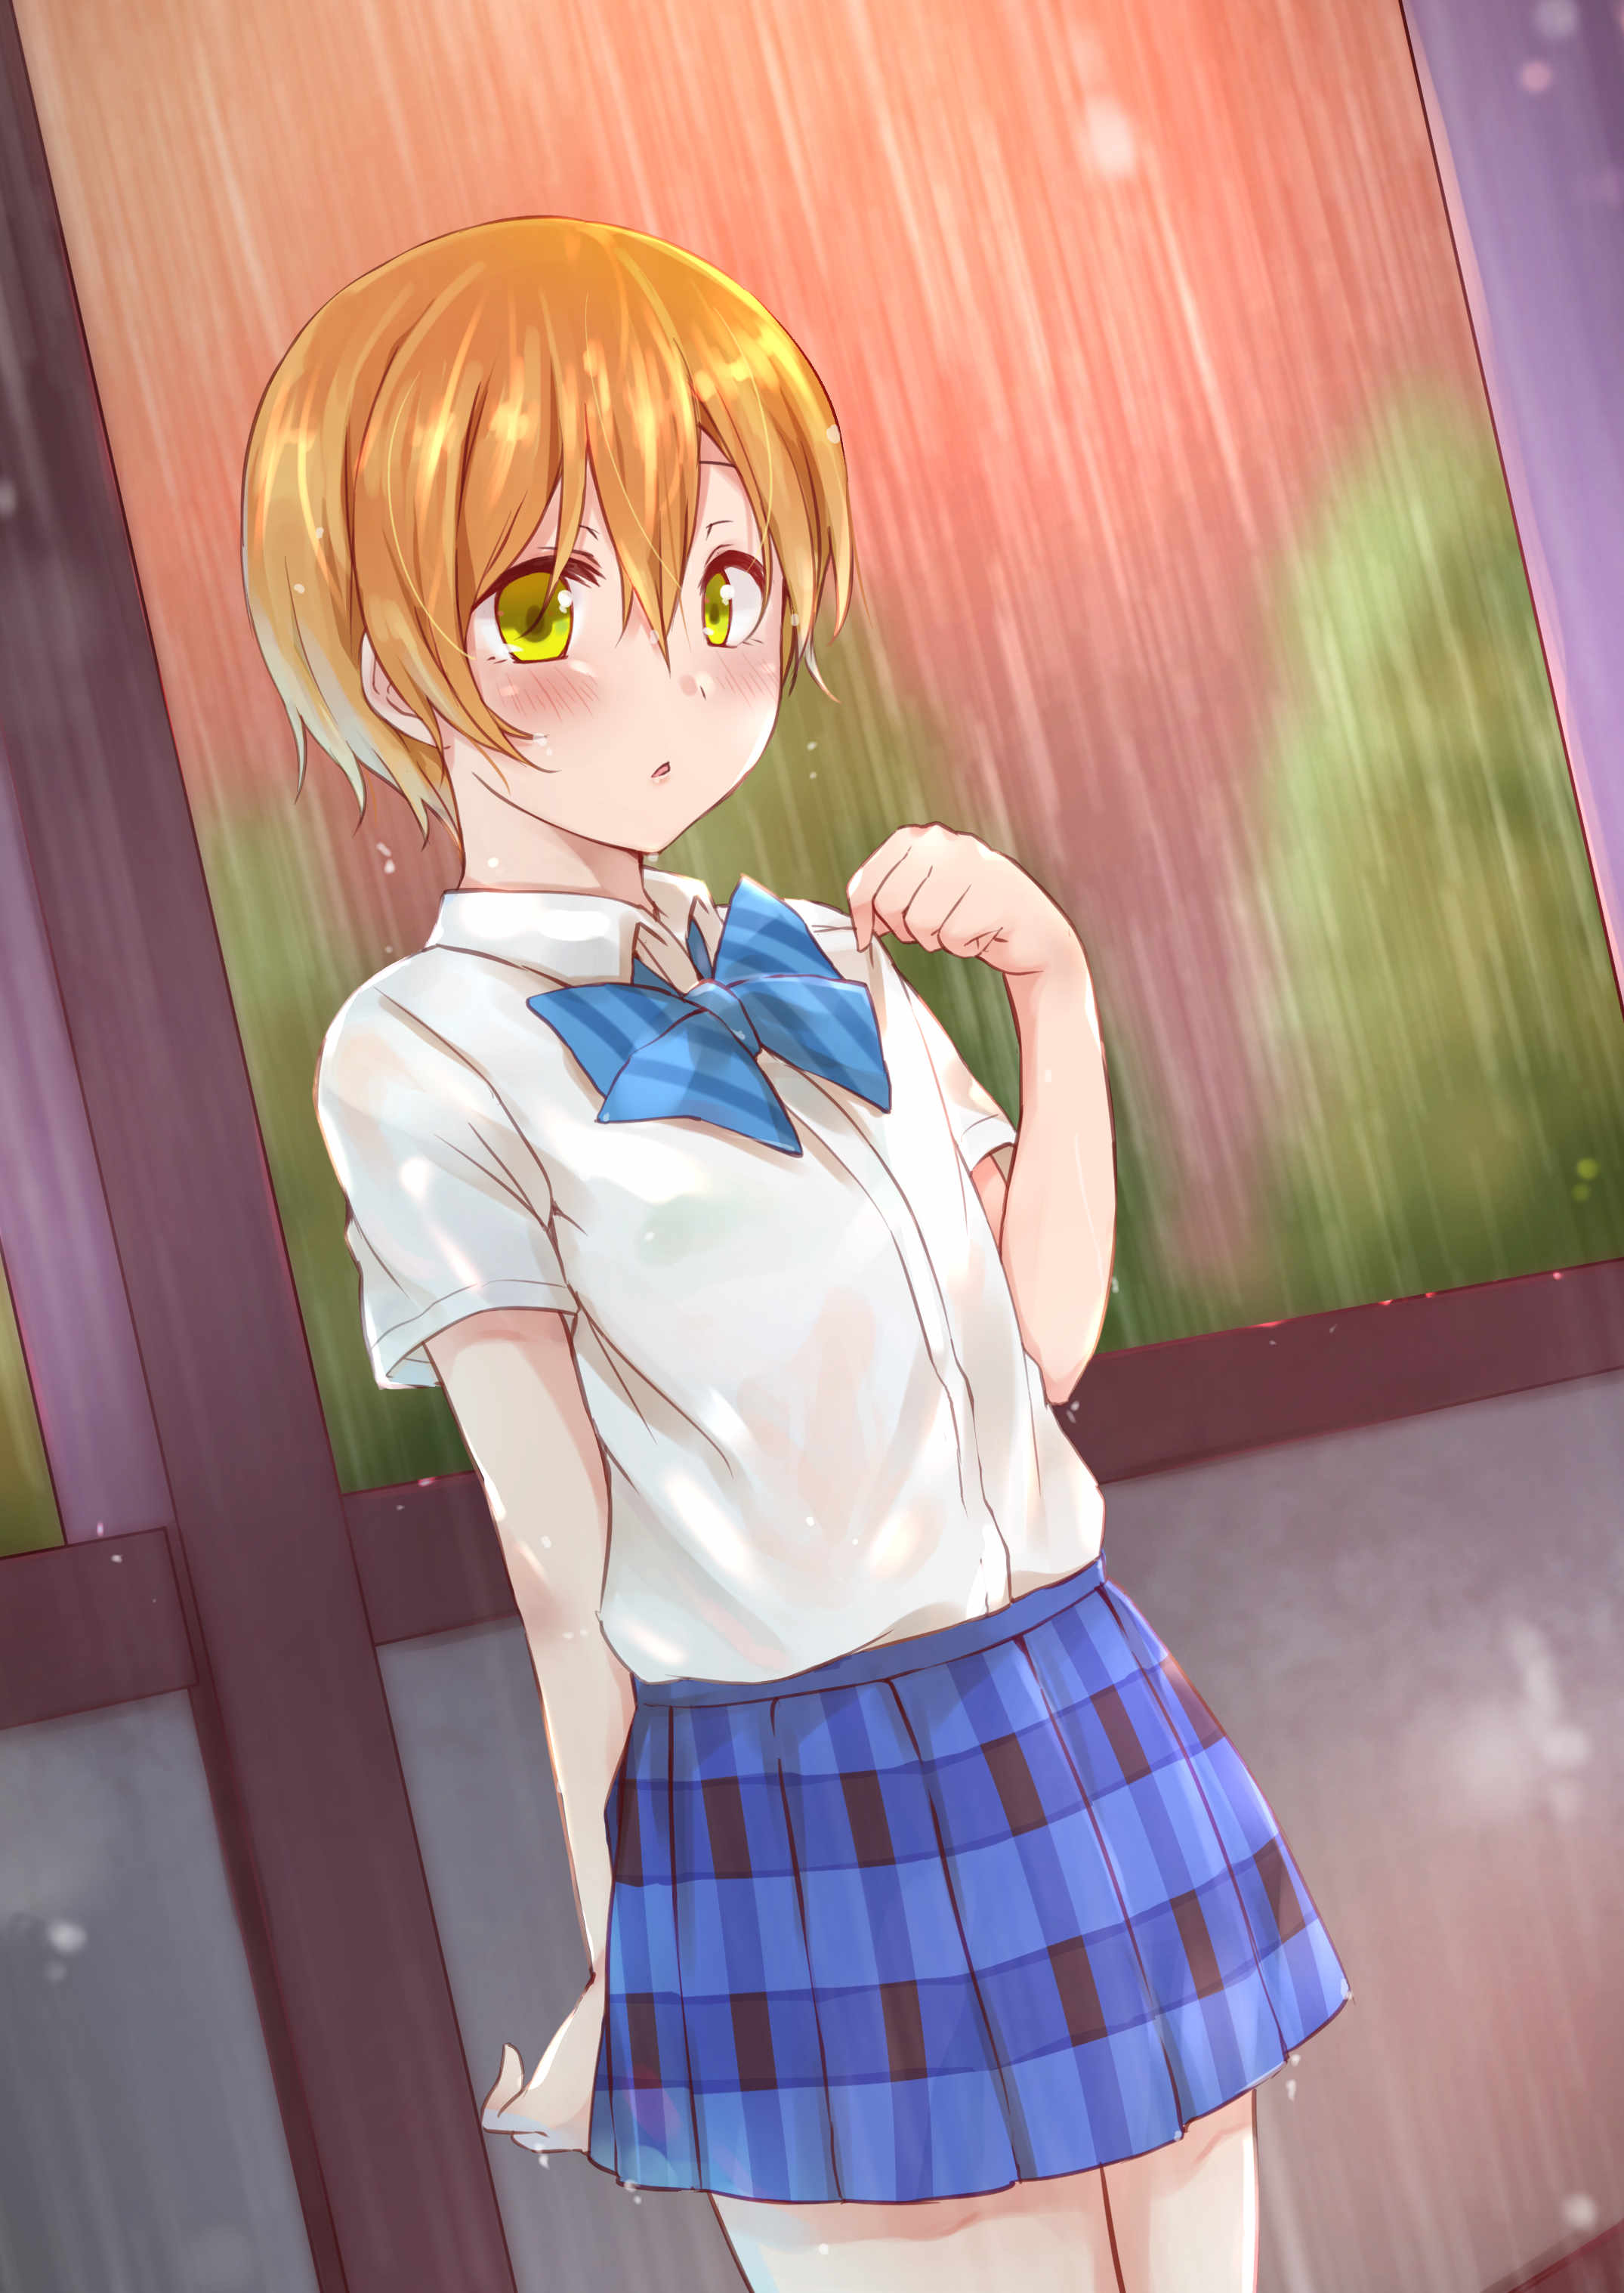 1girl absurdres bangs blue_bow blue_skirt blush bow bra bra_through_clothes brown_hair collared_shirt commentary_request dress_shirt eyebrows_visible_through_hair green_bra hair_between_eyes hand_up highres hitotsuki_no_yagi hoshizora_rin love_live! love_live!_school_idol_project outdoors parted_lips plaid plaid_skirt pleated_skirt rain see-through shirt short_hair short_sleeves skirt solo striped striped_bow underwear vertical_stripes wet wet_clothes wet_hair wet_shirt white_shirt yellow_eyes